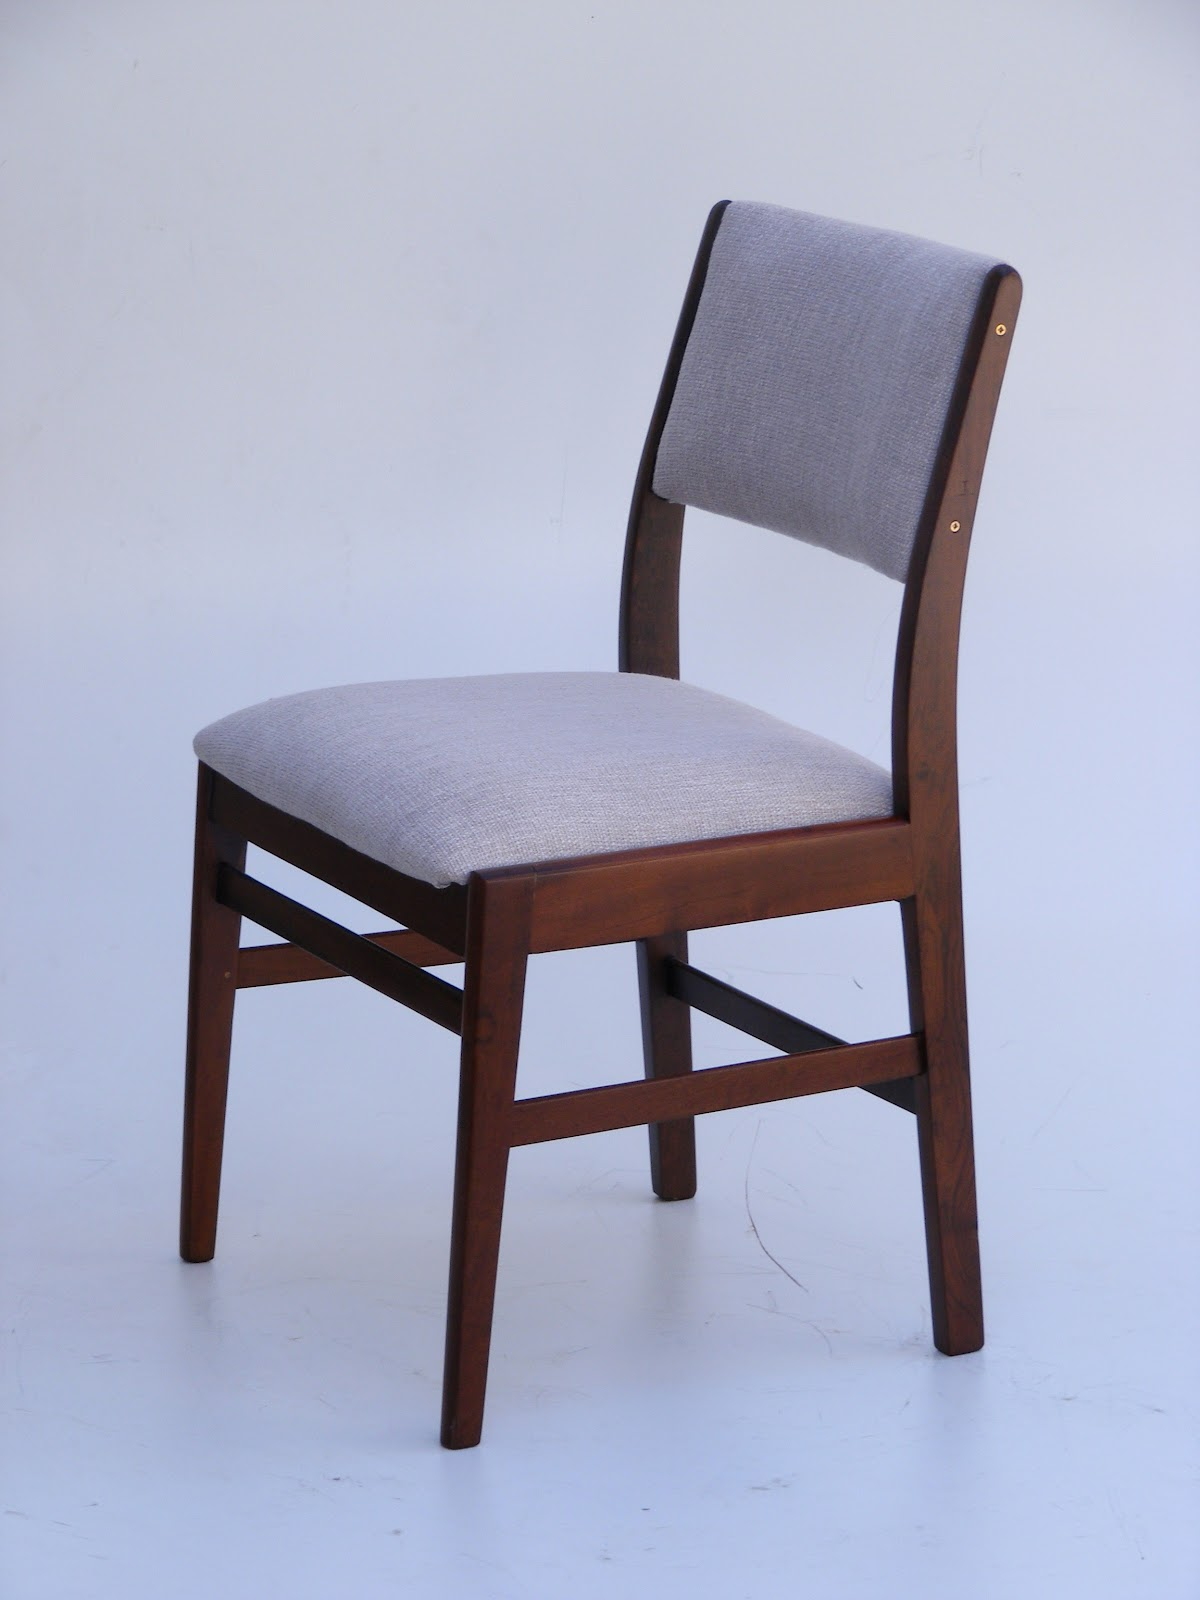 Vamp furniture new revamped vintage furniture stock at for Grey single chair